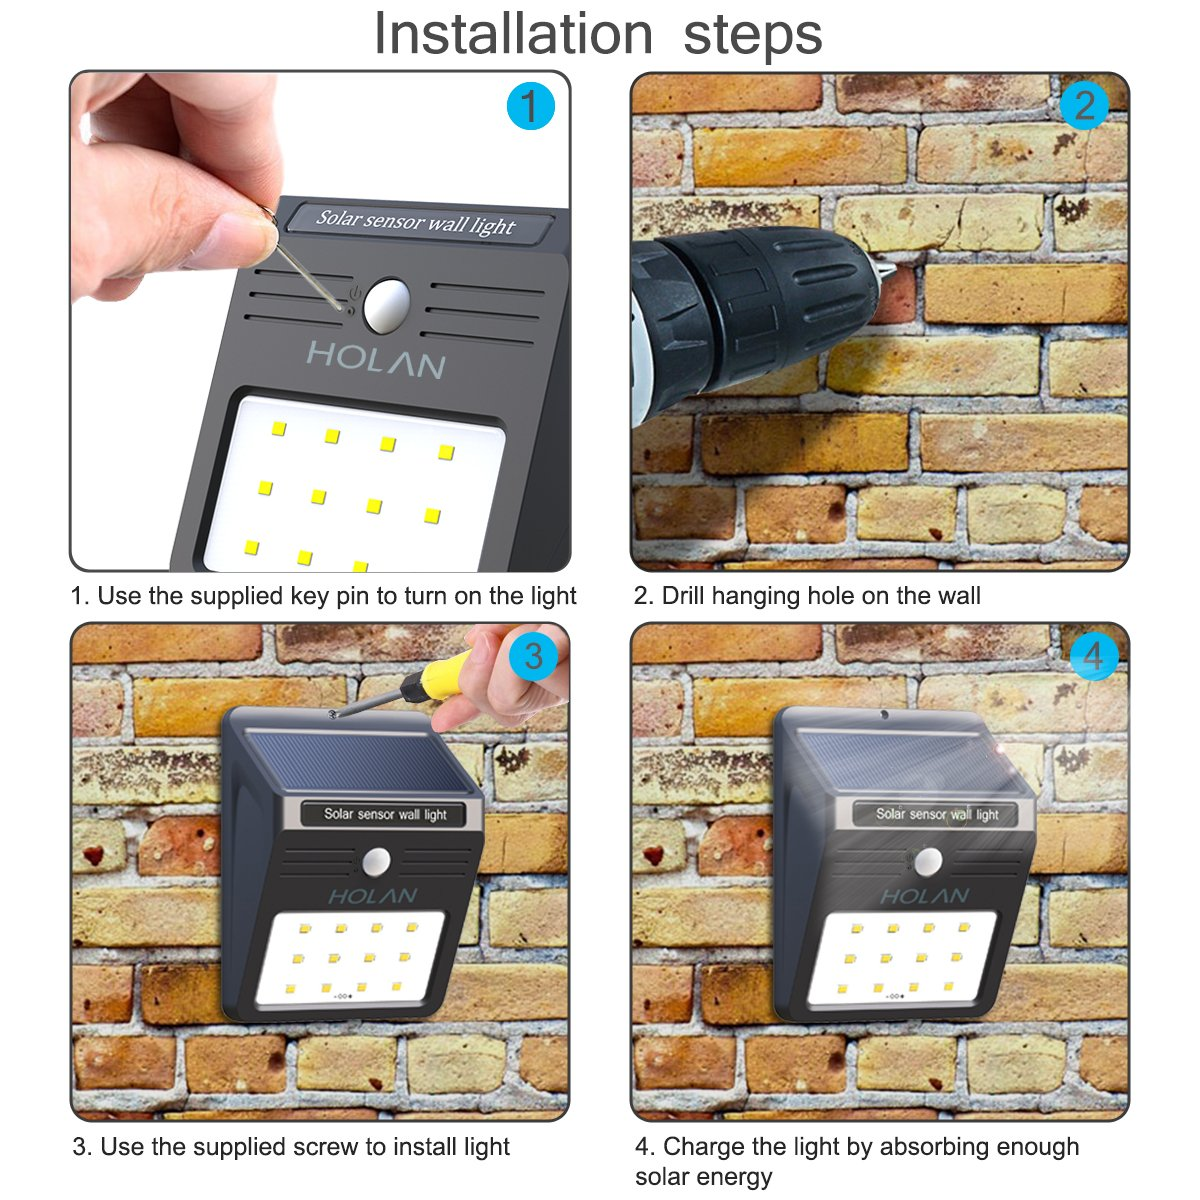 Mulcolor 12 LED Solar Lights Waterproof Solar Powered Motion Sensor Light Wireless Led Security Lights Outdoor Wall Light … by Mulcolor (Image #7)